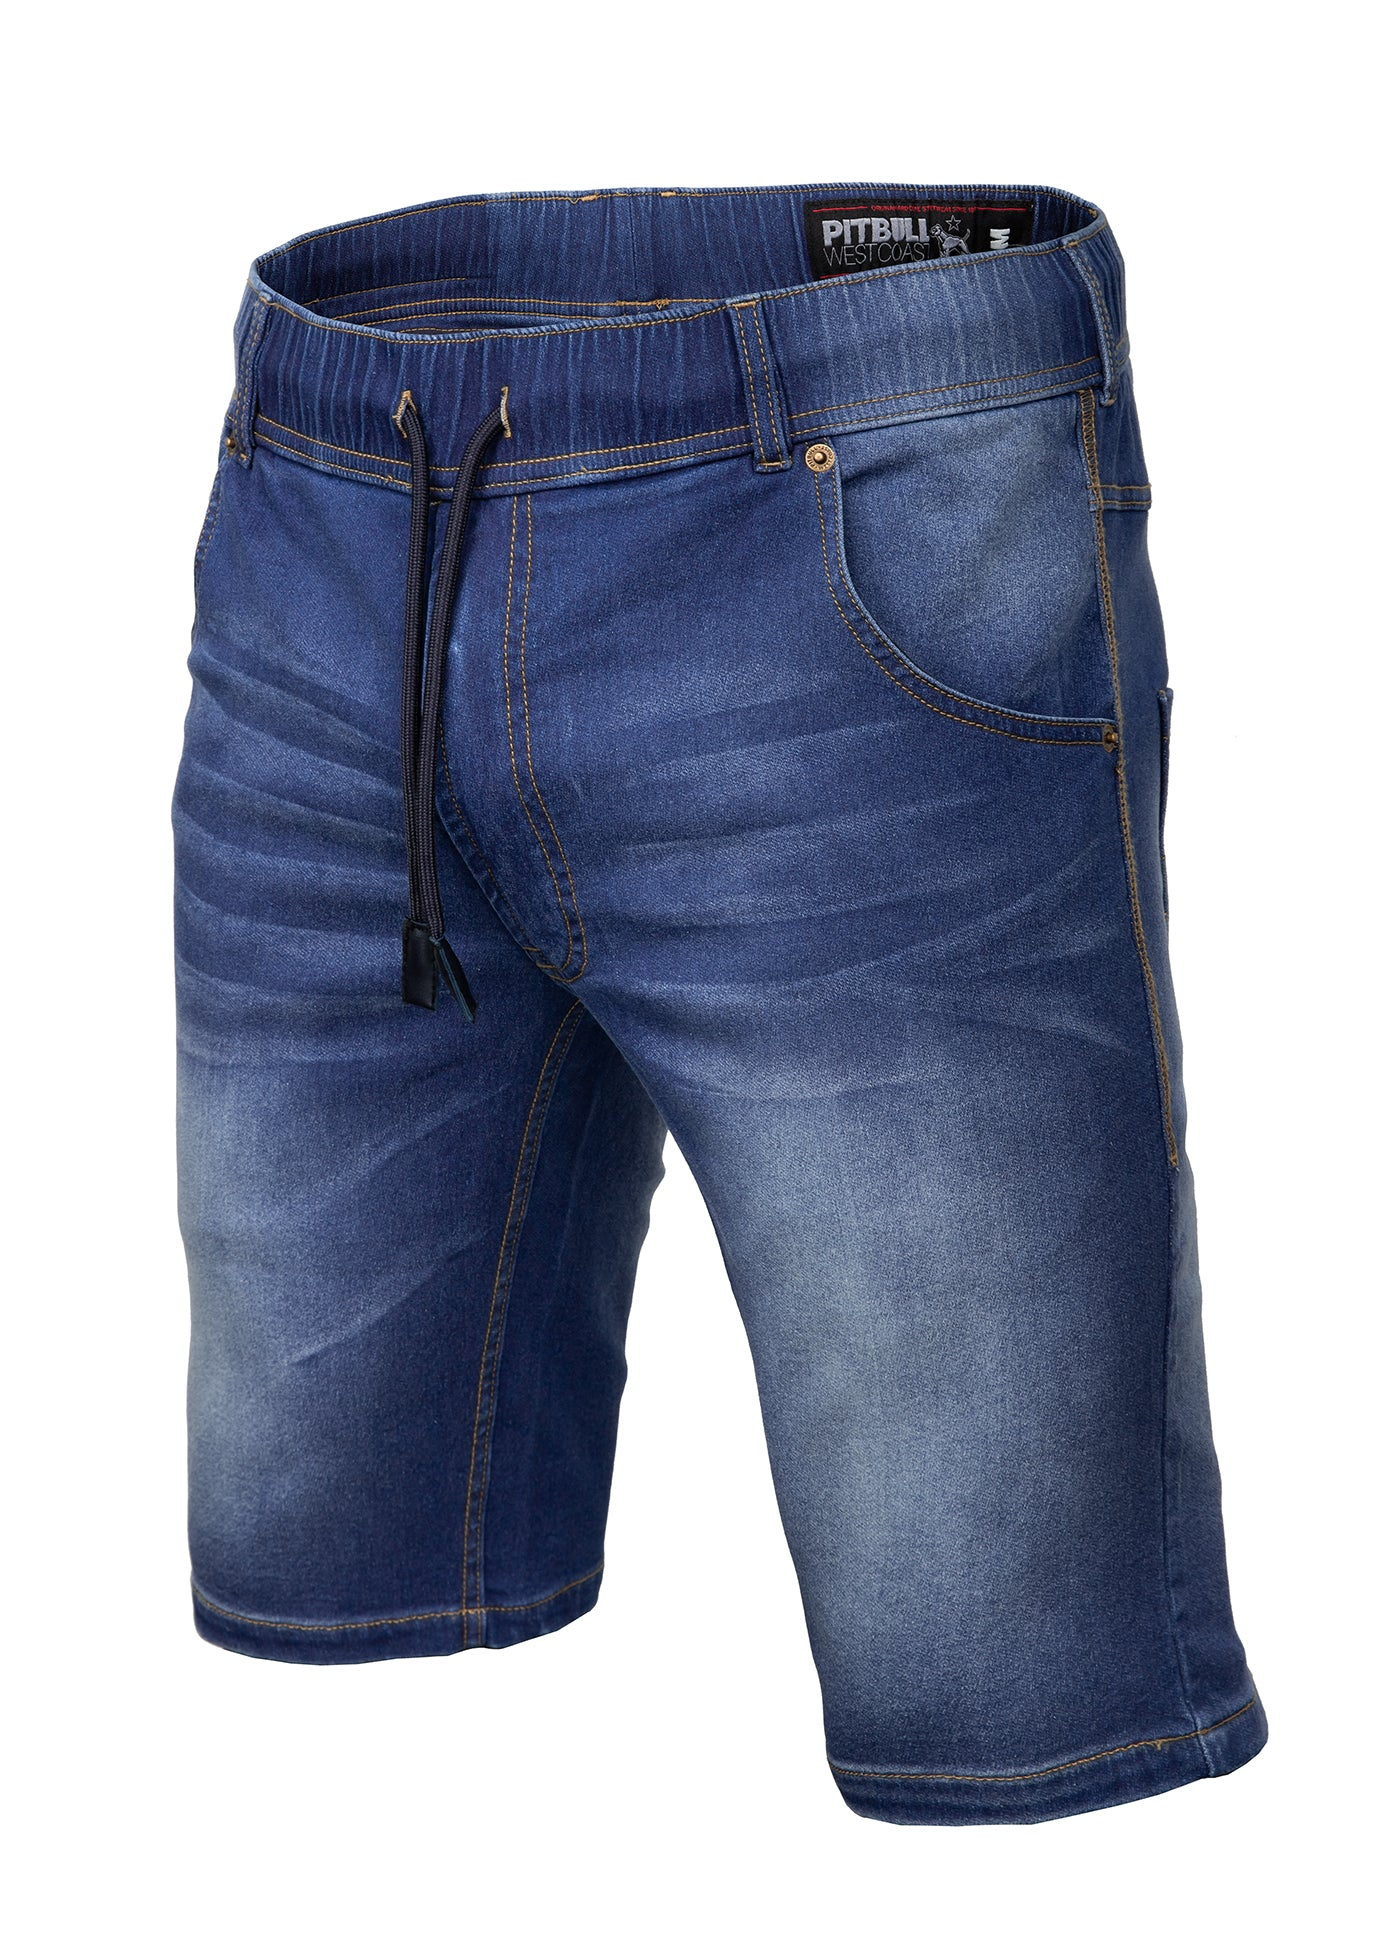 Denim Shorts BENNET Dark Navy - pitbullwestcoast